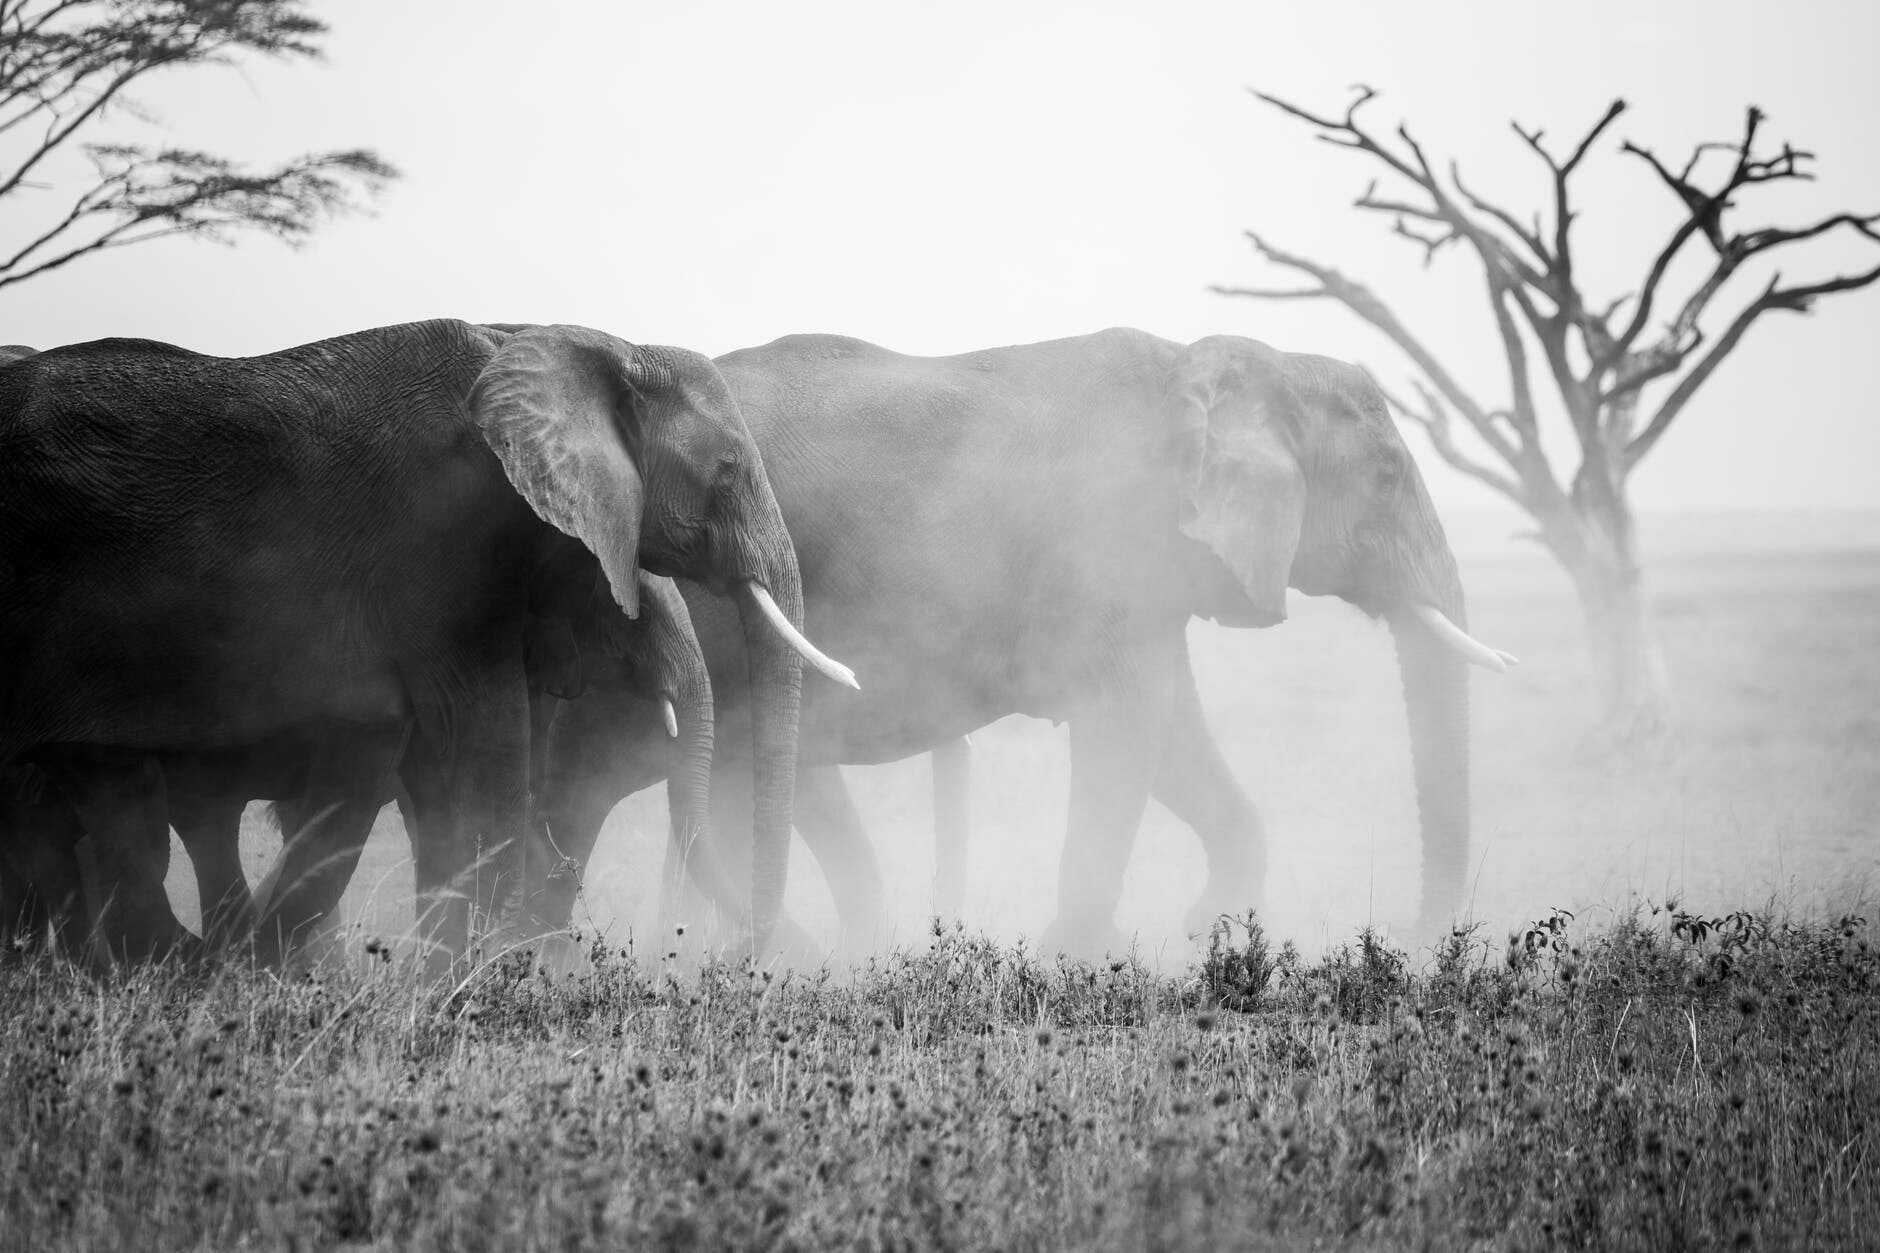 Elephants In Thailand: An Easy 2021 Guide